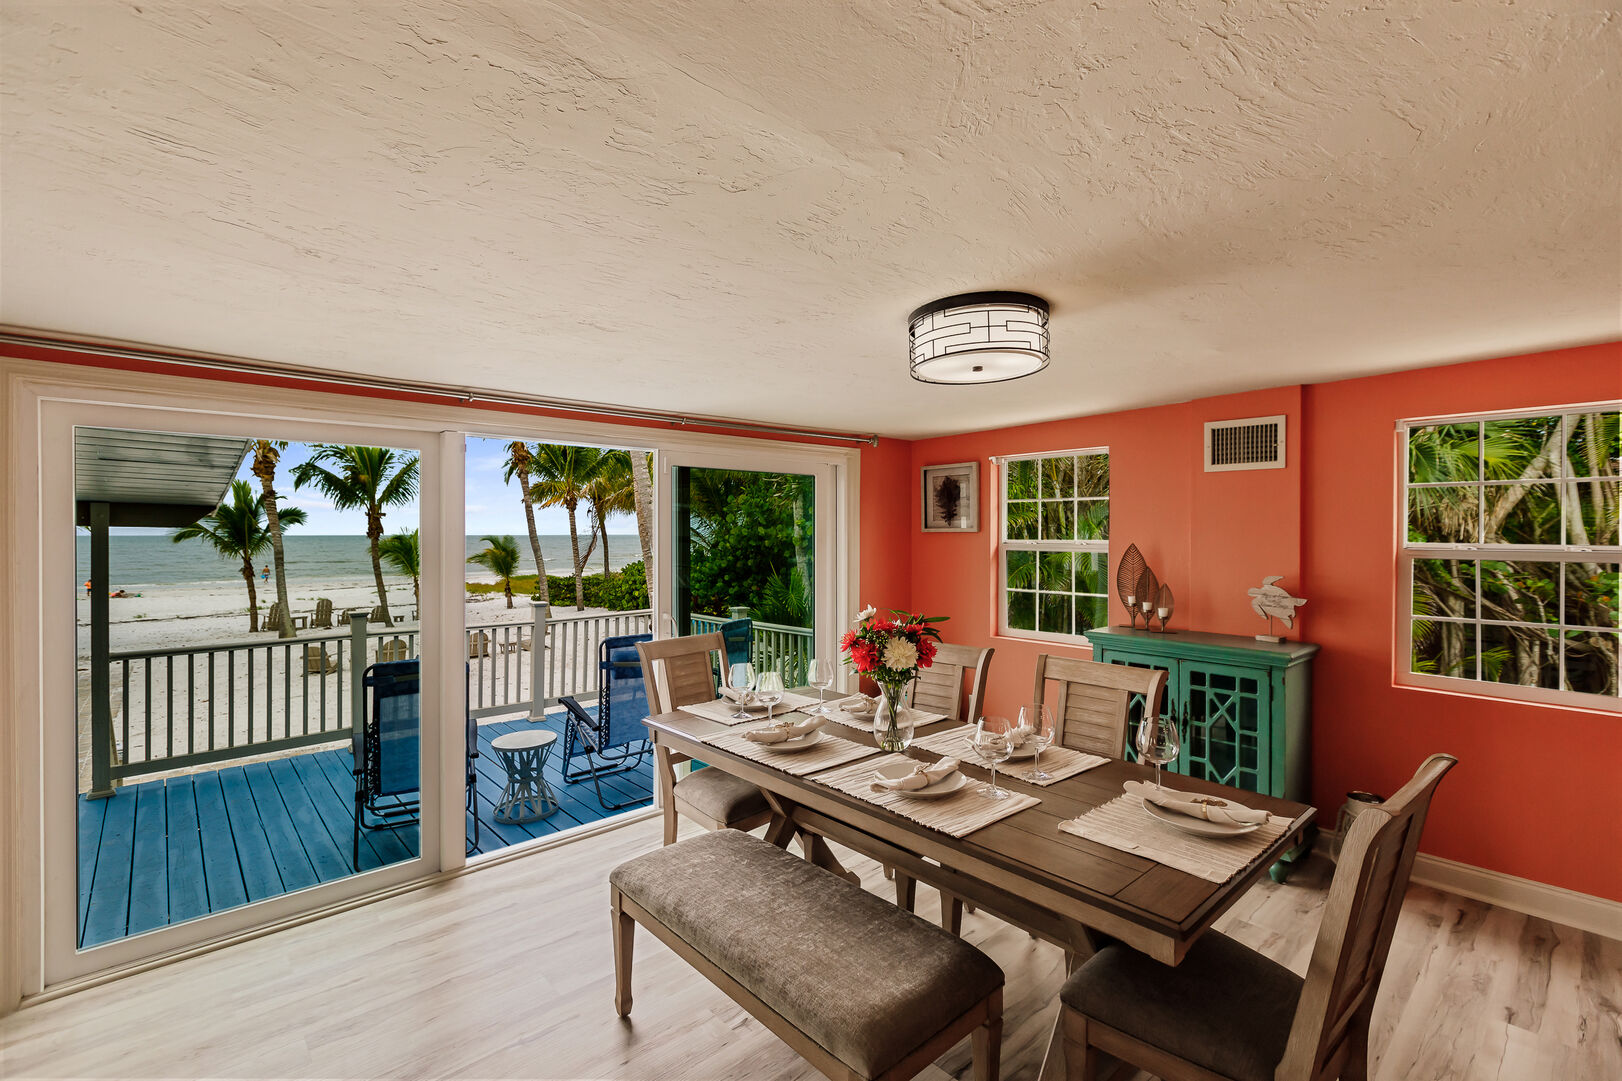 Dining Room Area and Back Deck View of Beach Private Beach House Rental in Florida